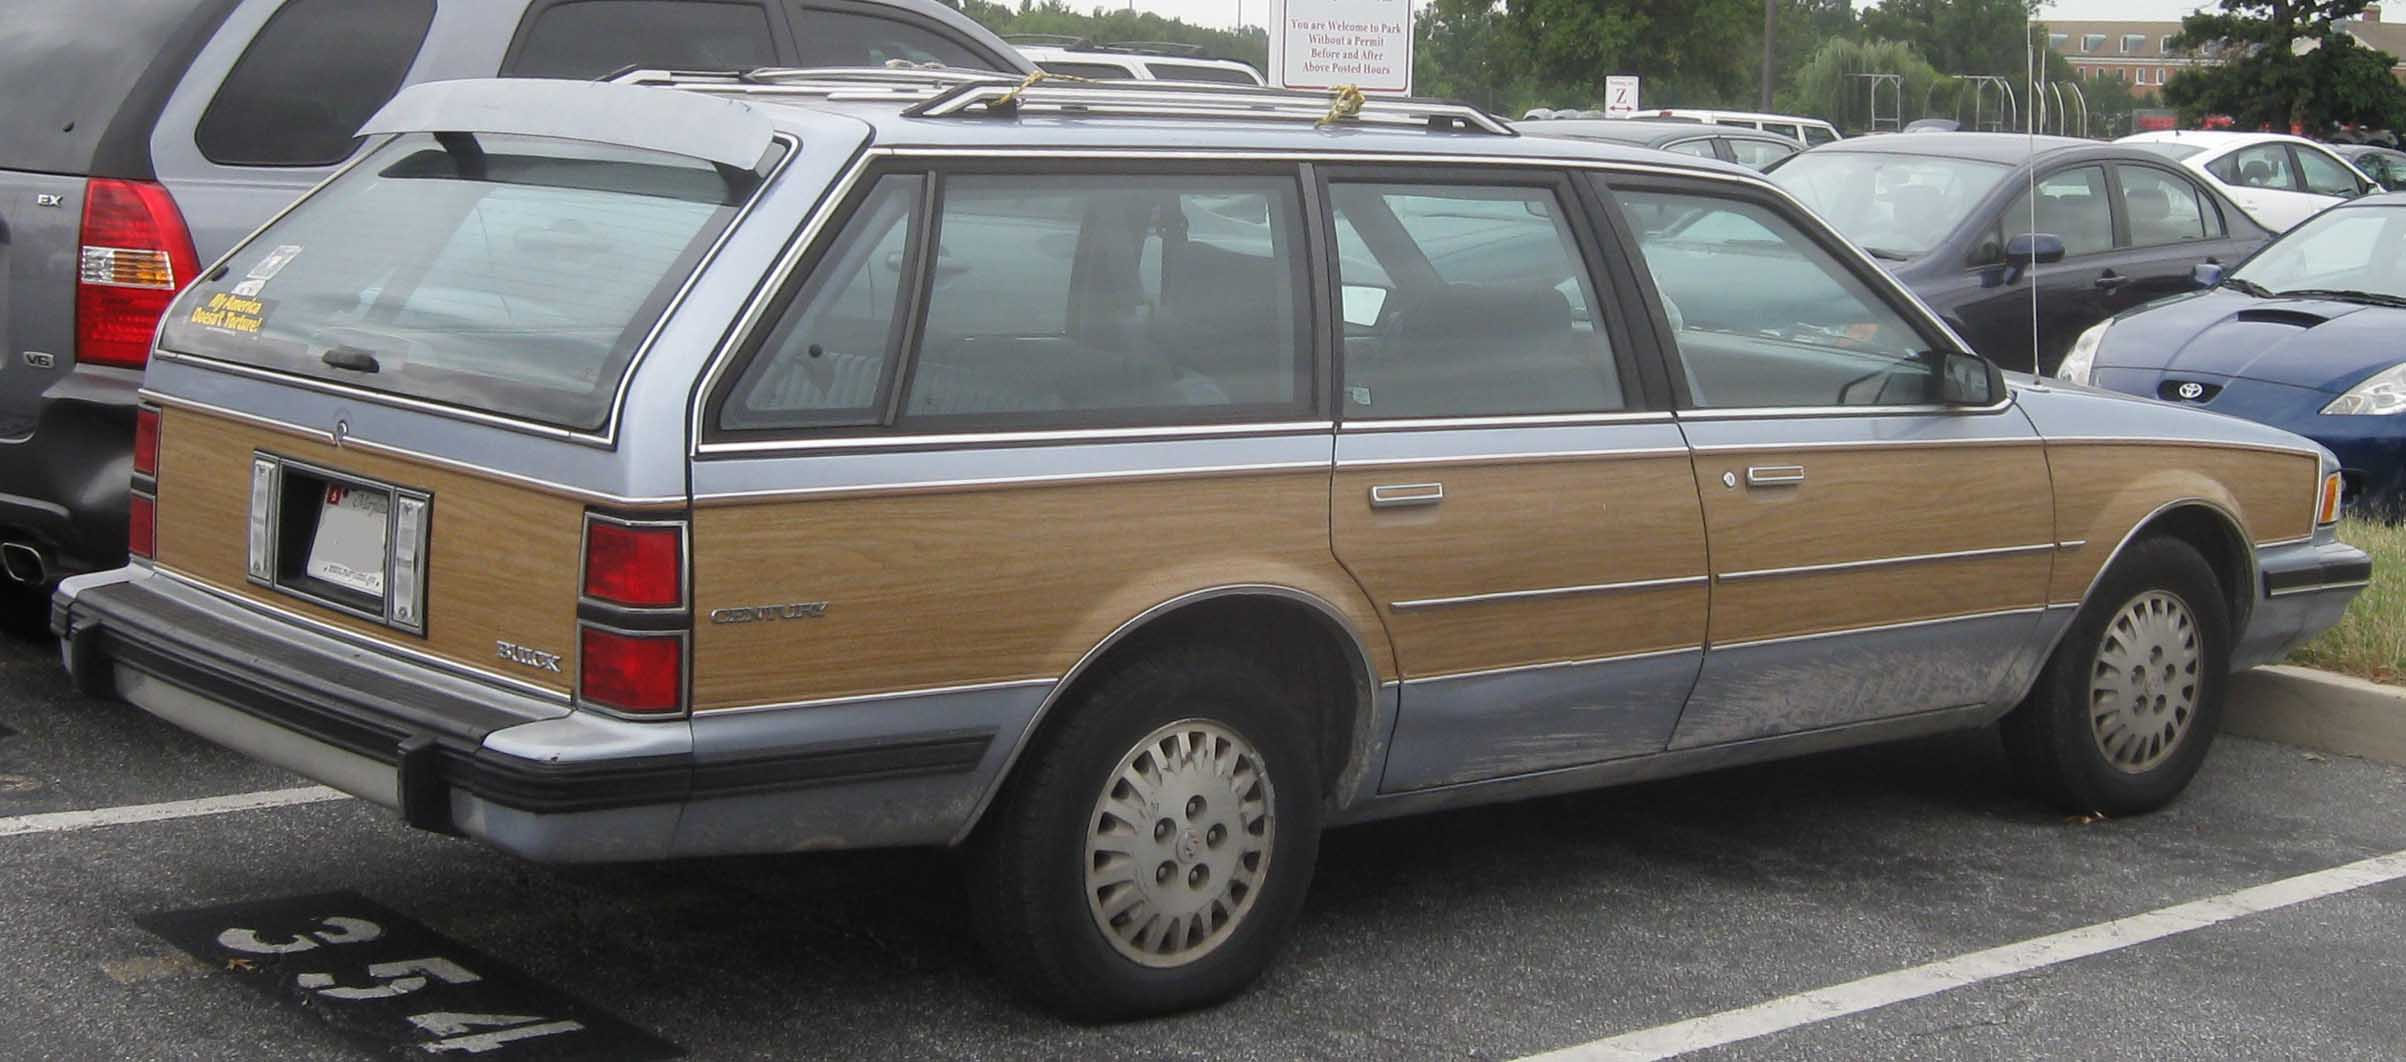 1994 Buick Century wagon   pictures, information and specs - Auto